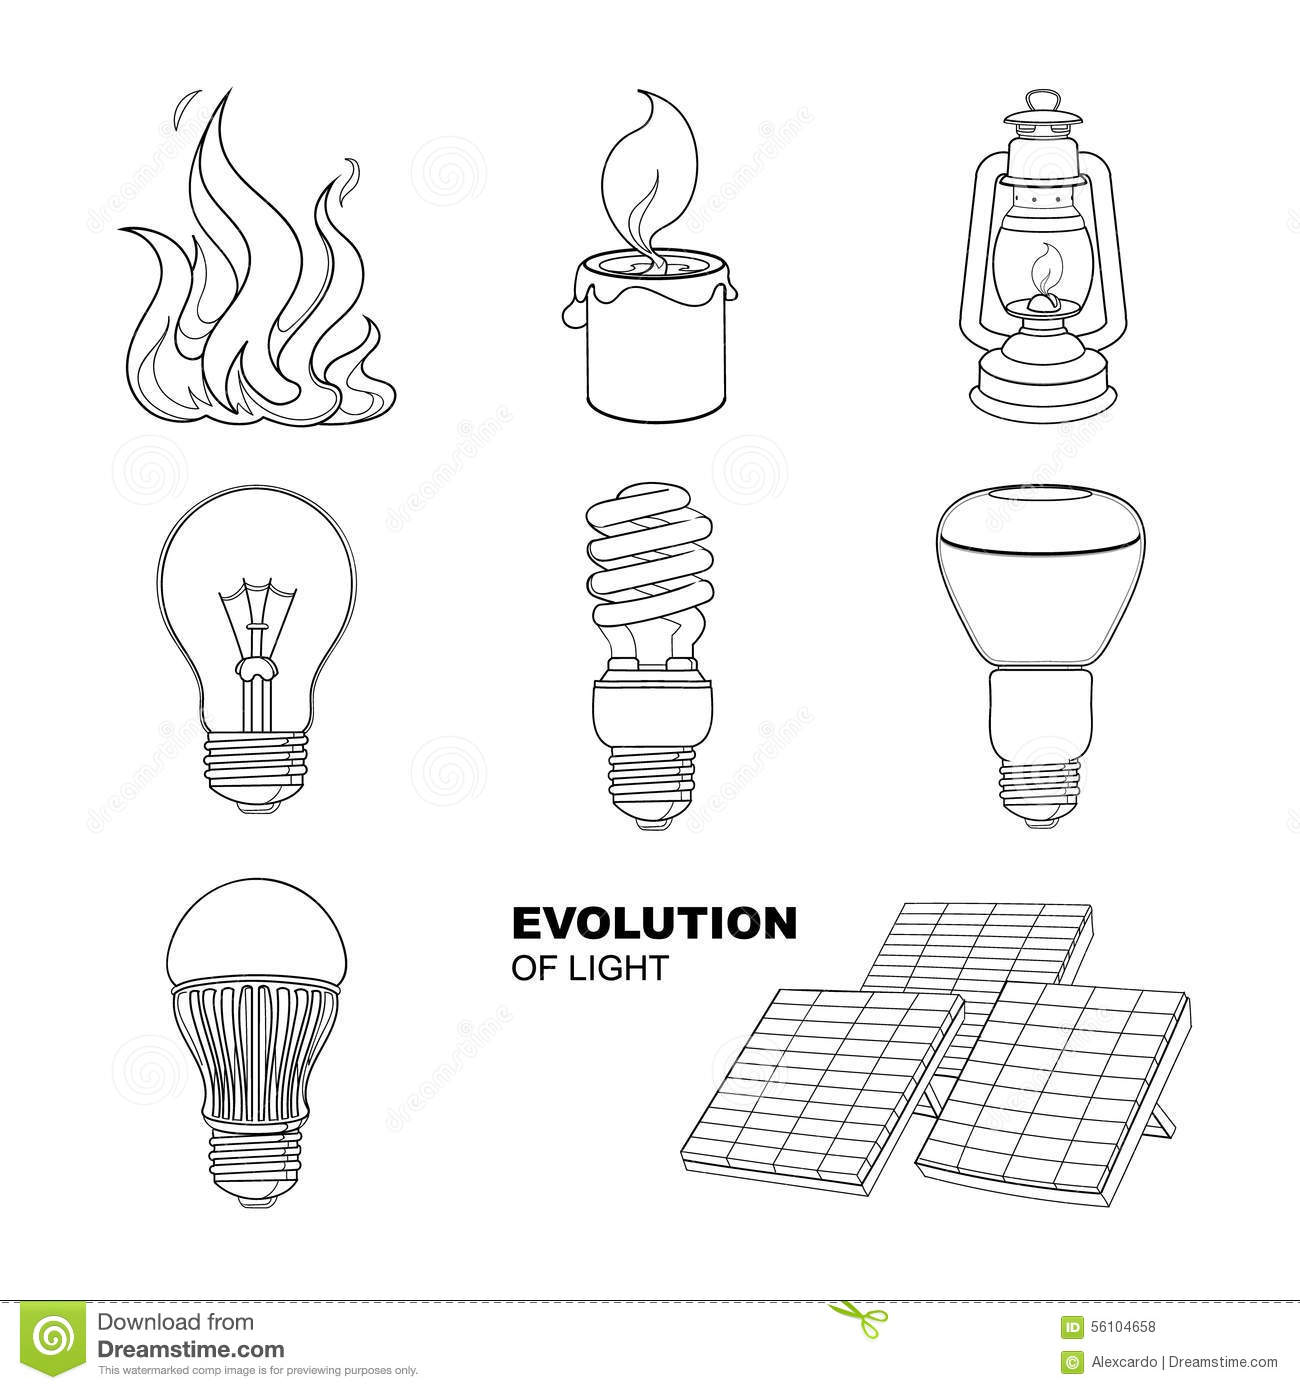 Clear Dodecahedron Glass Geometric Terrarium likewise Double Wide Trailer Wiring Diagram as well Container House Plans together with AE 95 further Pool Motor Wiring Diagram. on fire solar panels